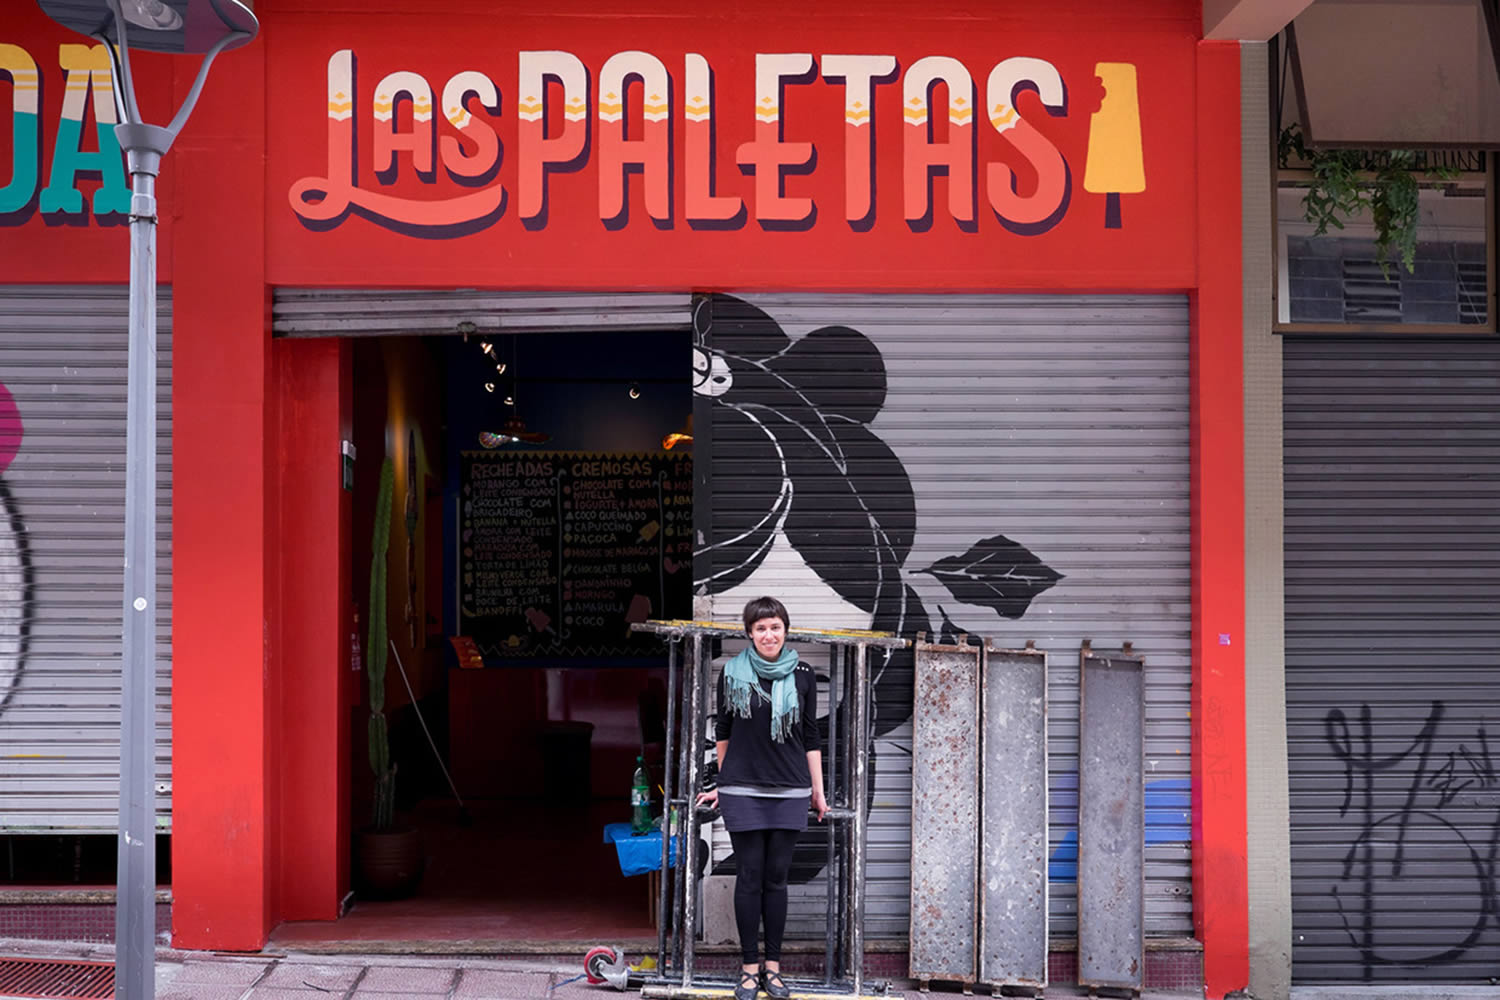 las paletas, store sign